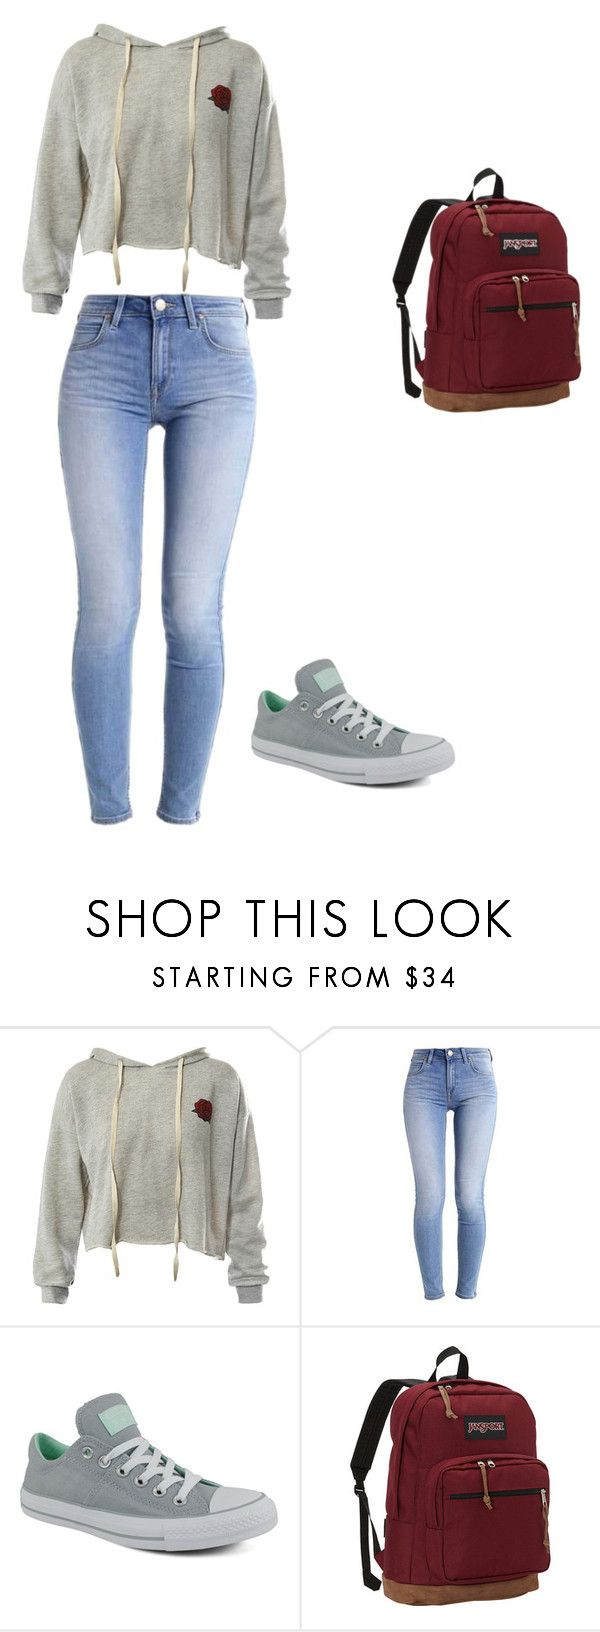 """School outfit #15"" by thisisnotjs on Polyvore featuring Sans Souci, Converse and JanSport"